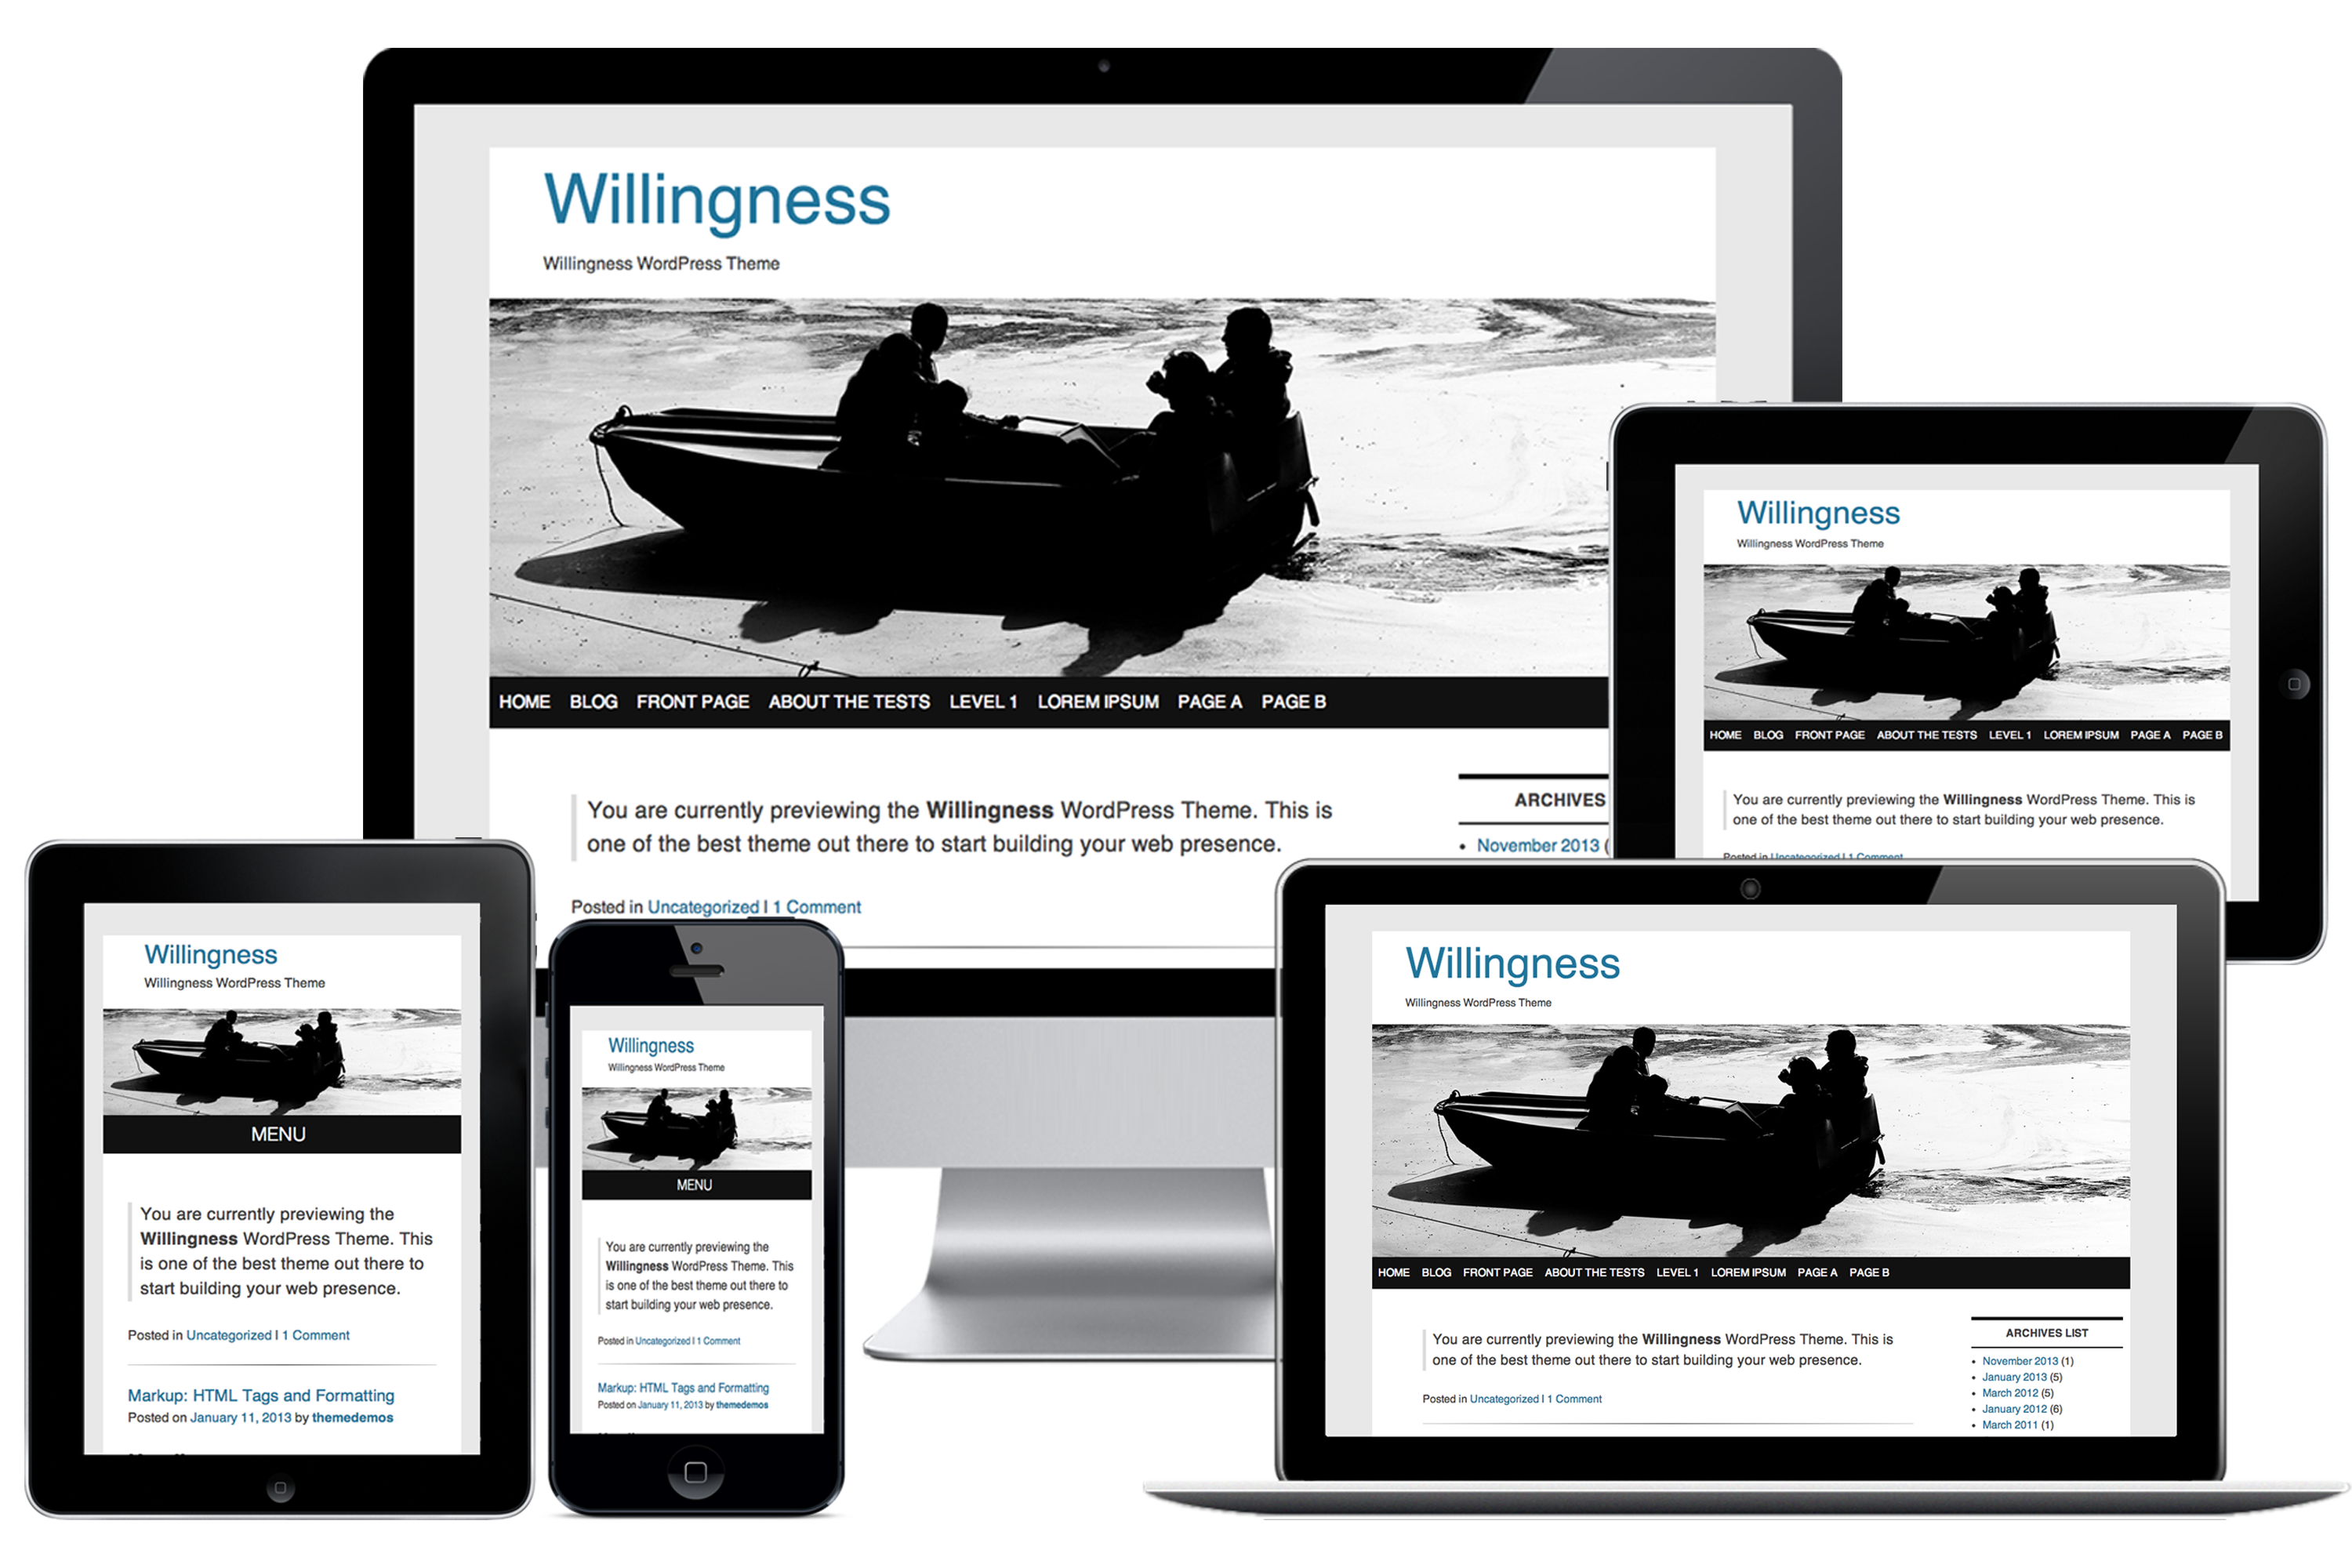 Willingness WordPress Theme Demonstration